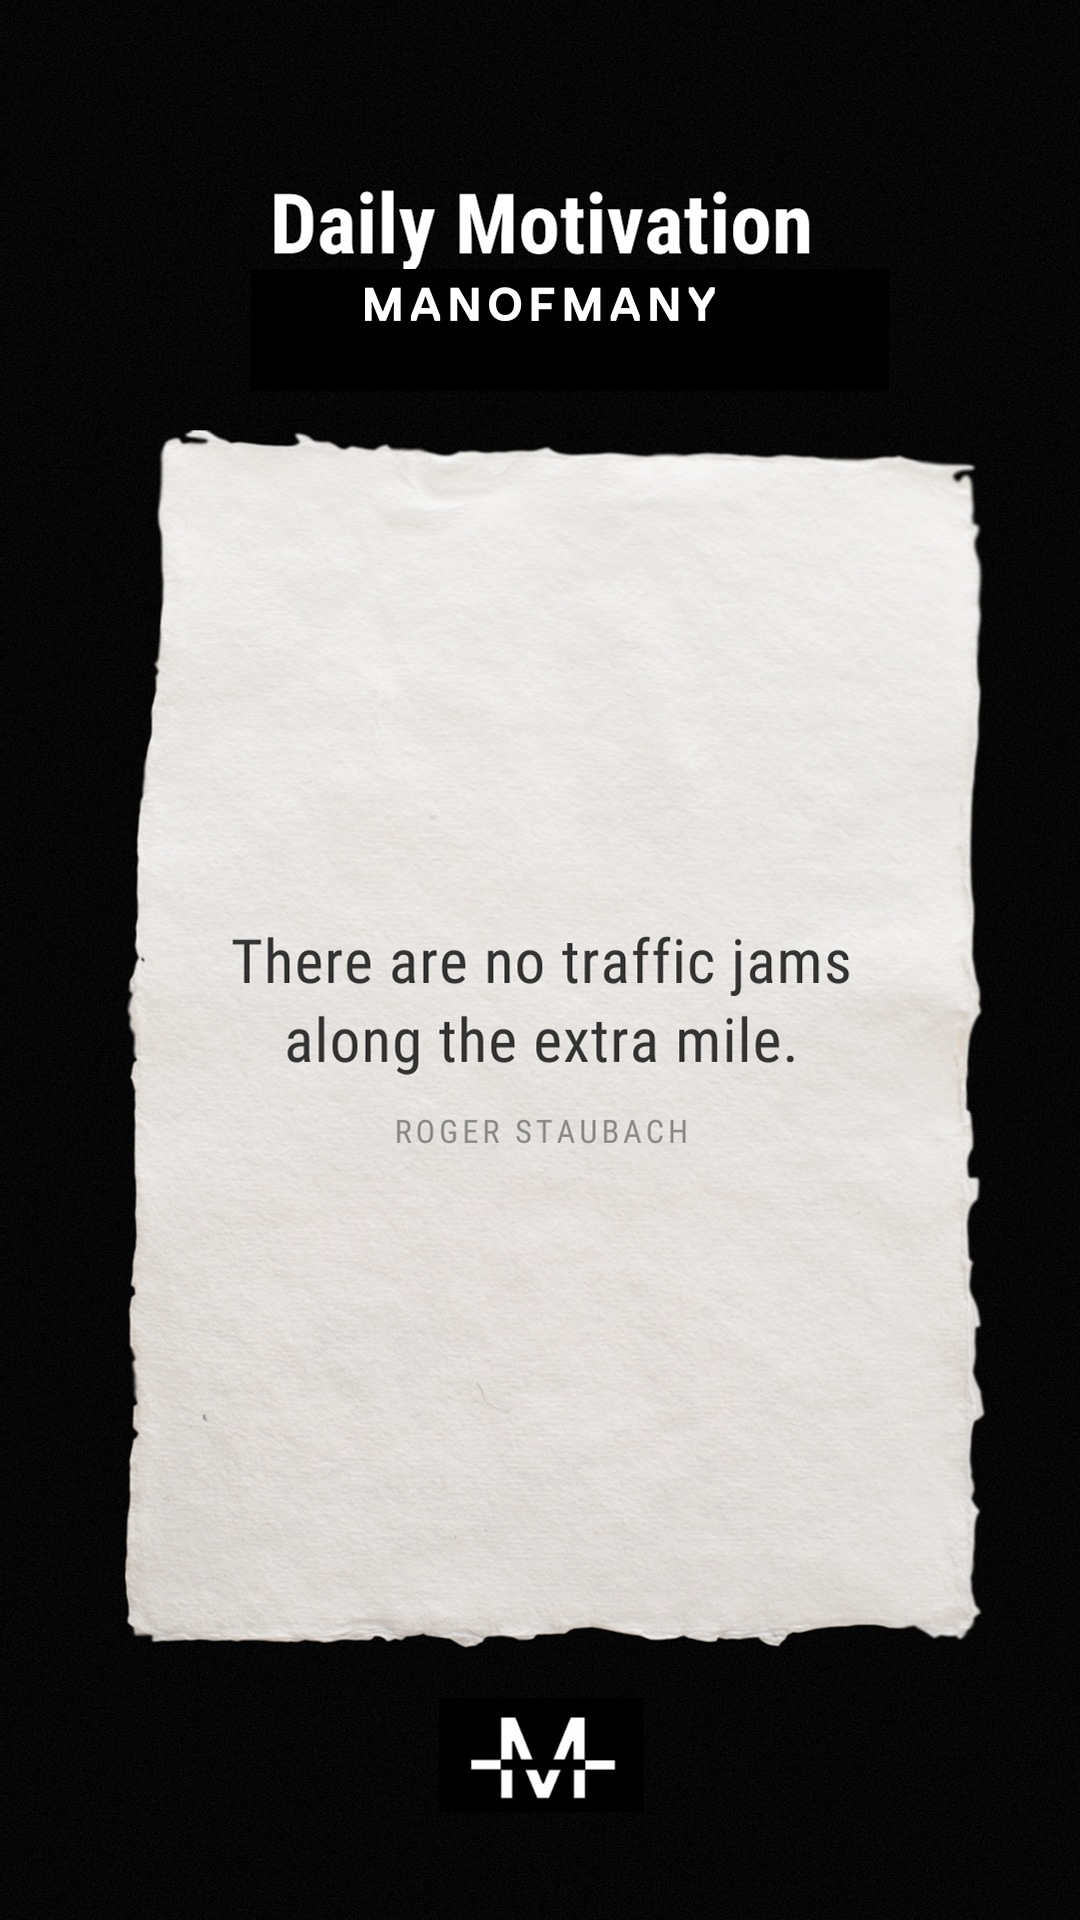 There are no traffic jams along the extra mile. –Roger Staubach quote